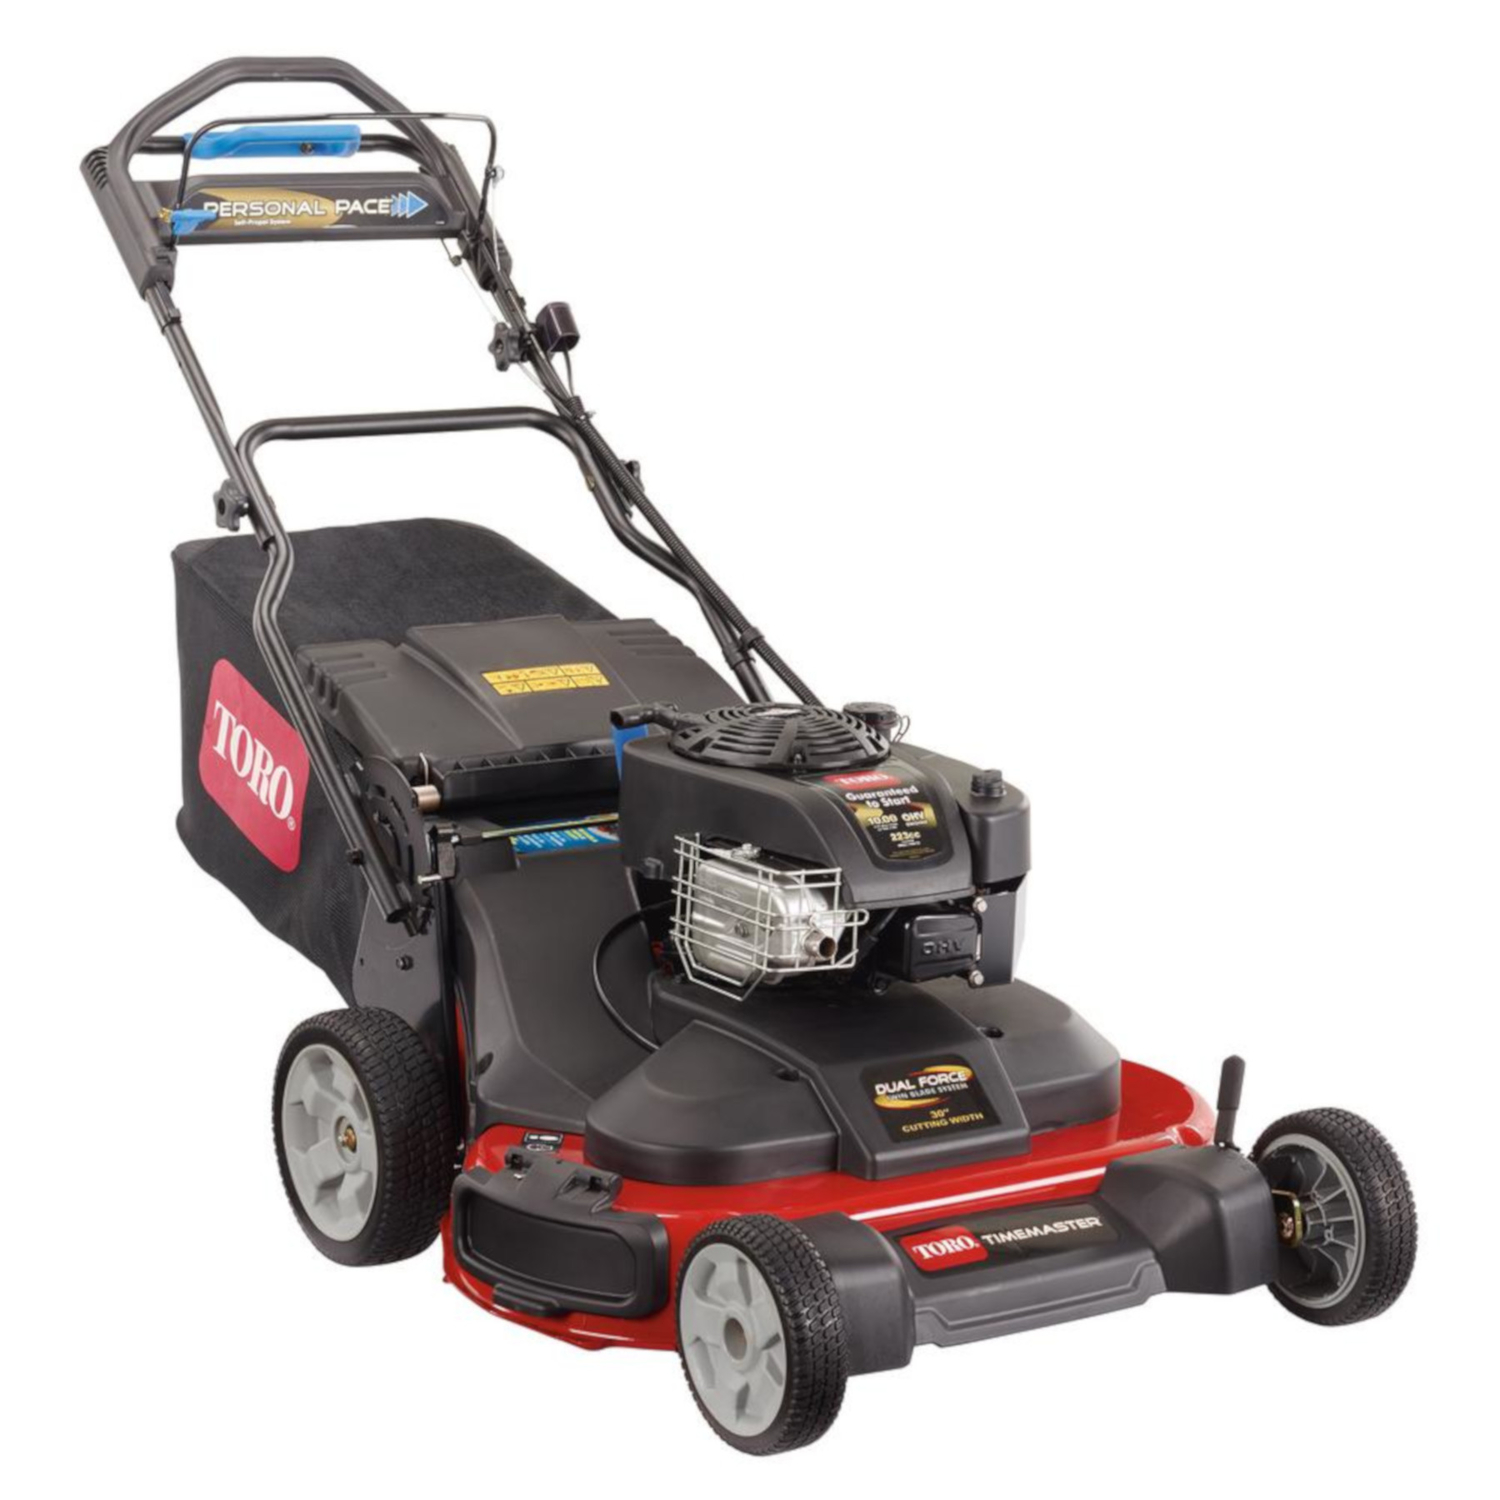 Toro Personal Pace TimeMaster 30 223 cc Manual-Push Lawn Mower